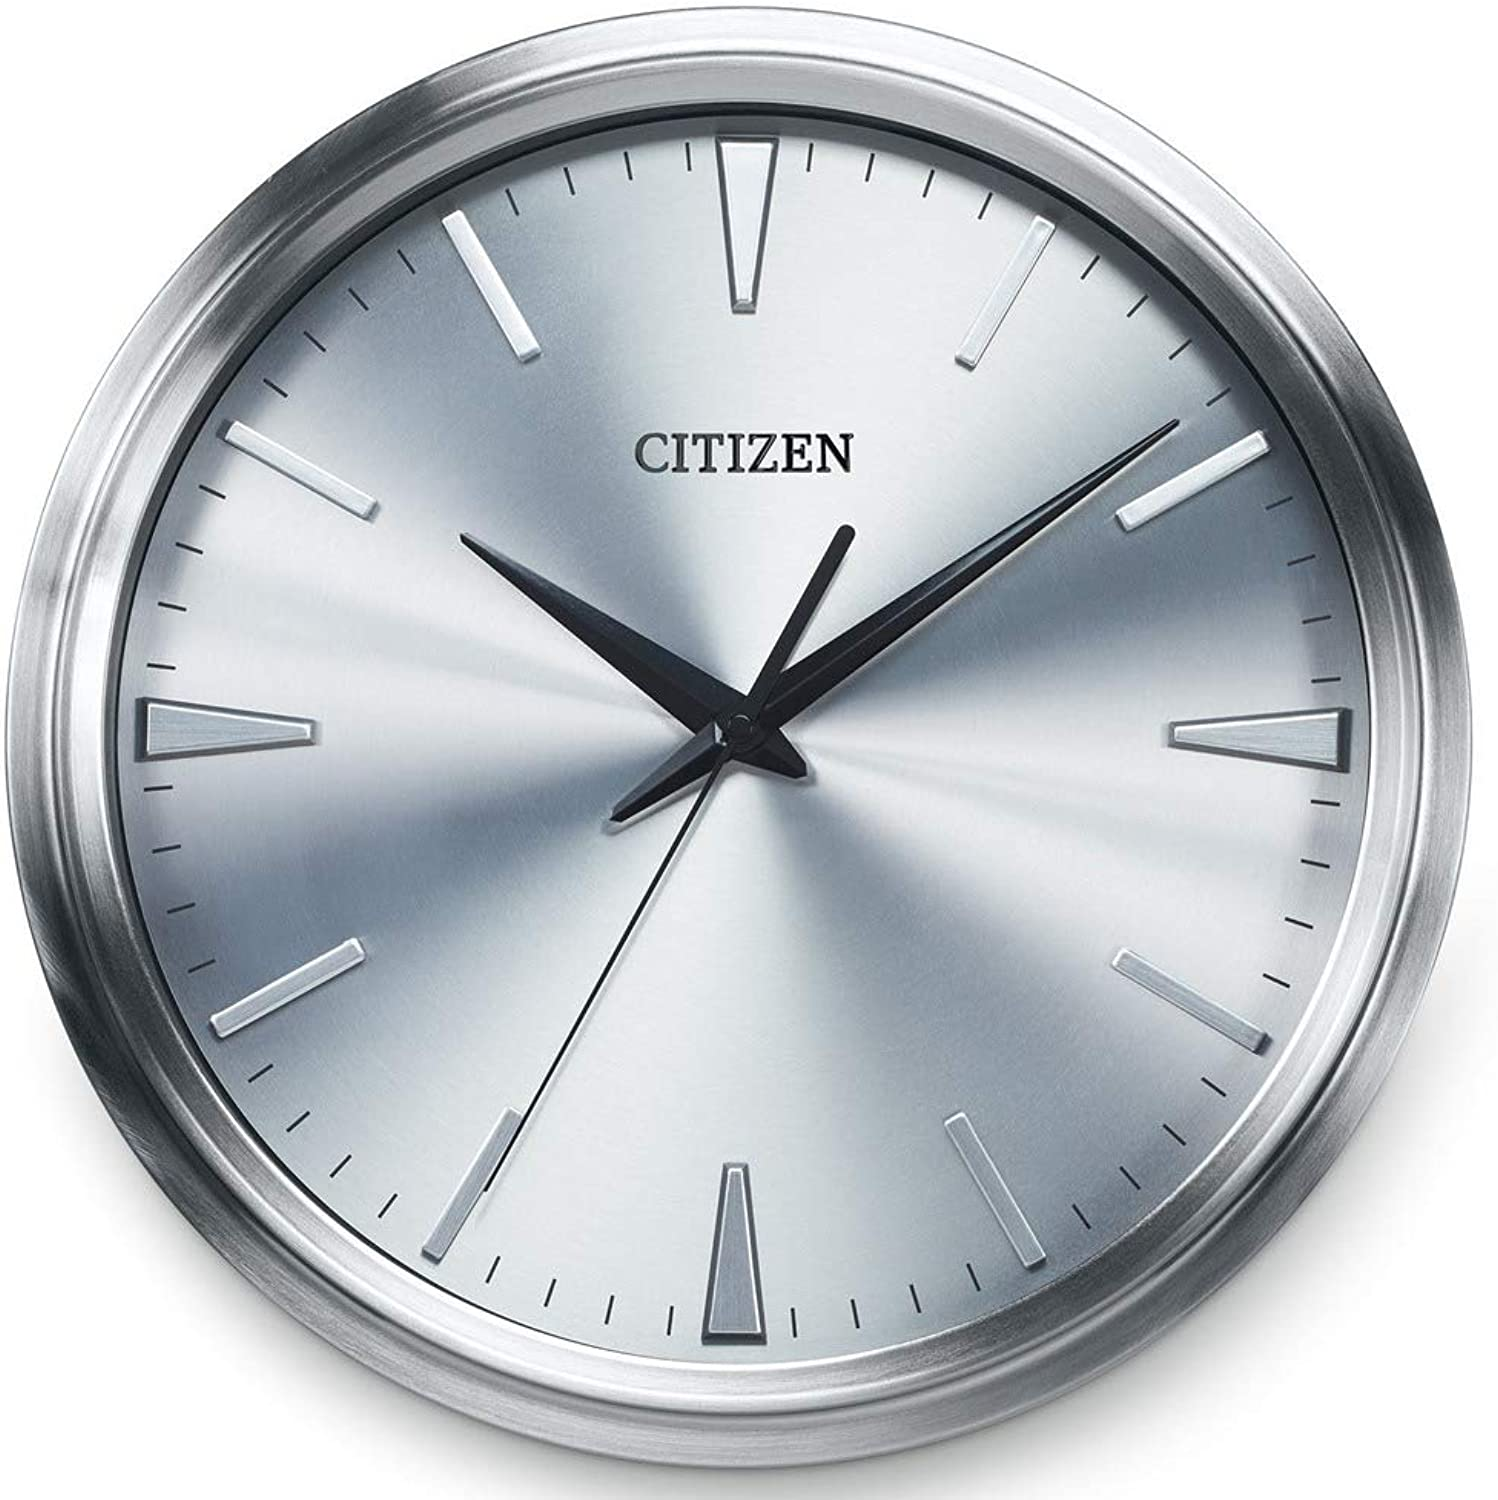 Citizen Gallery Circular Wall Clock Silver Tone CC2004